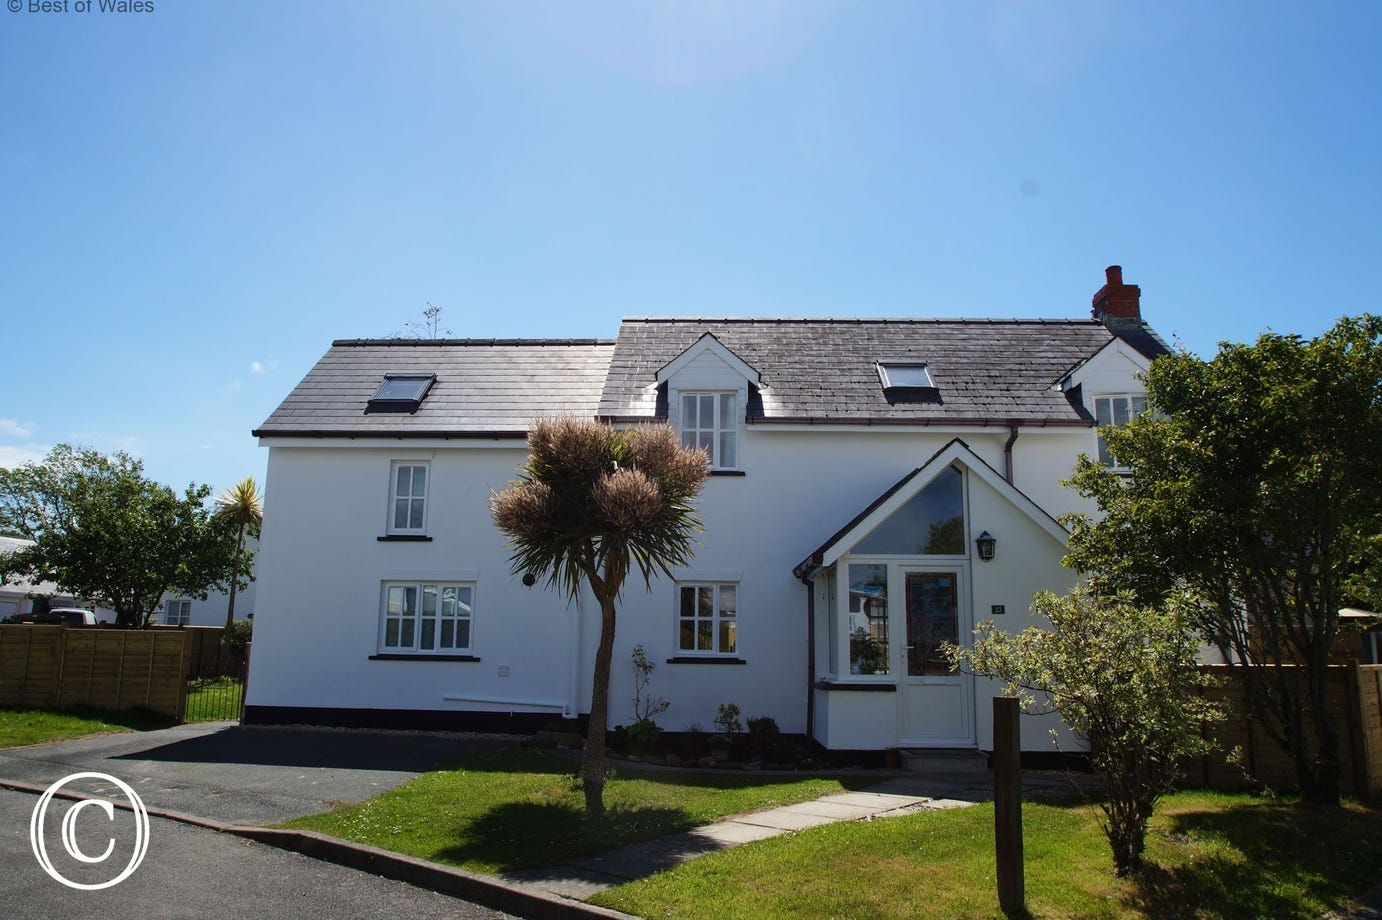 Deudraeth Holiday Cottage near the beach in Pembrokeshire